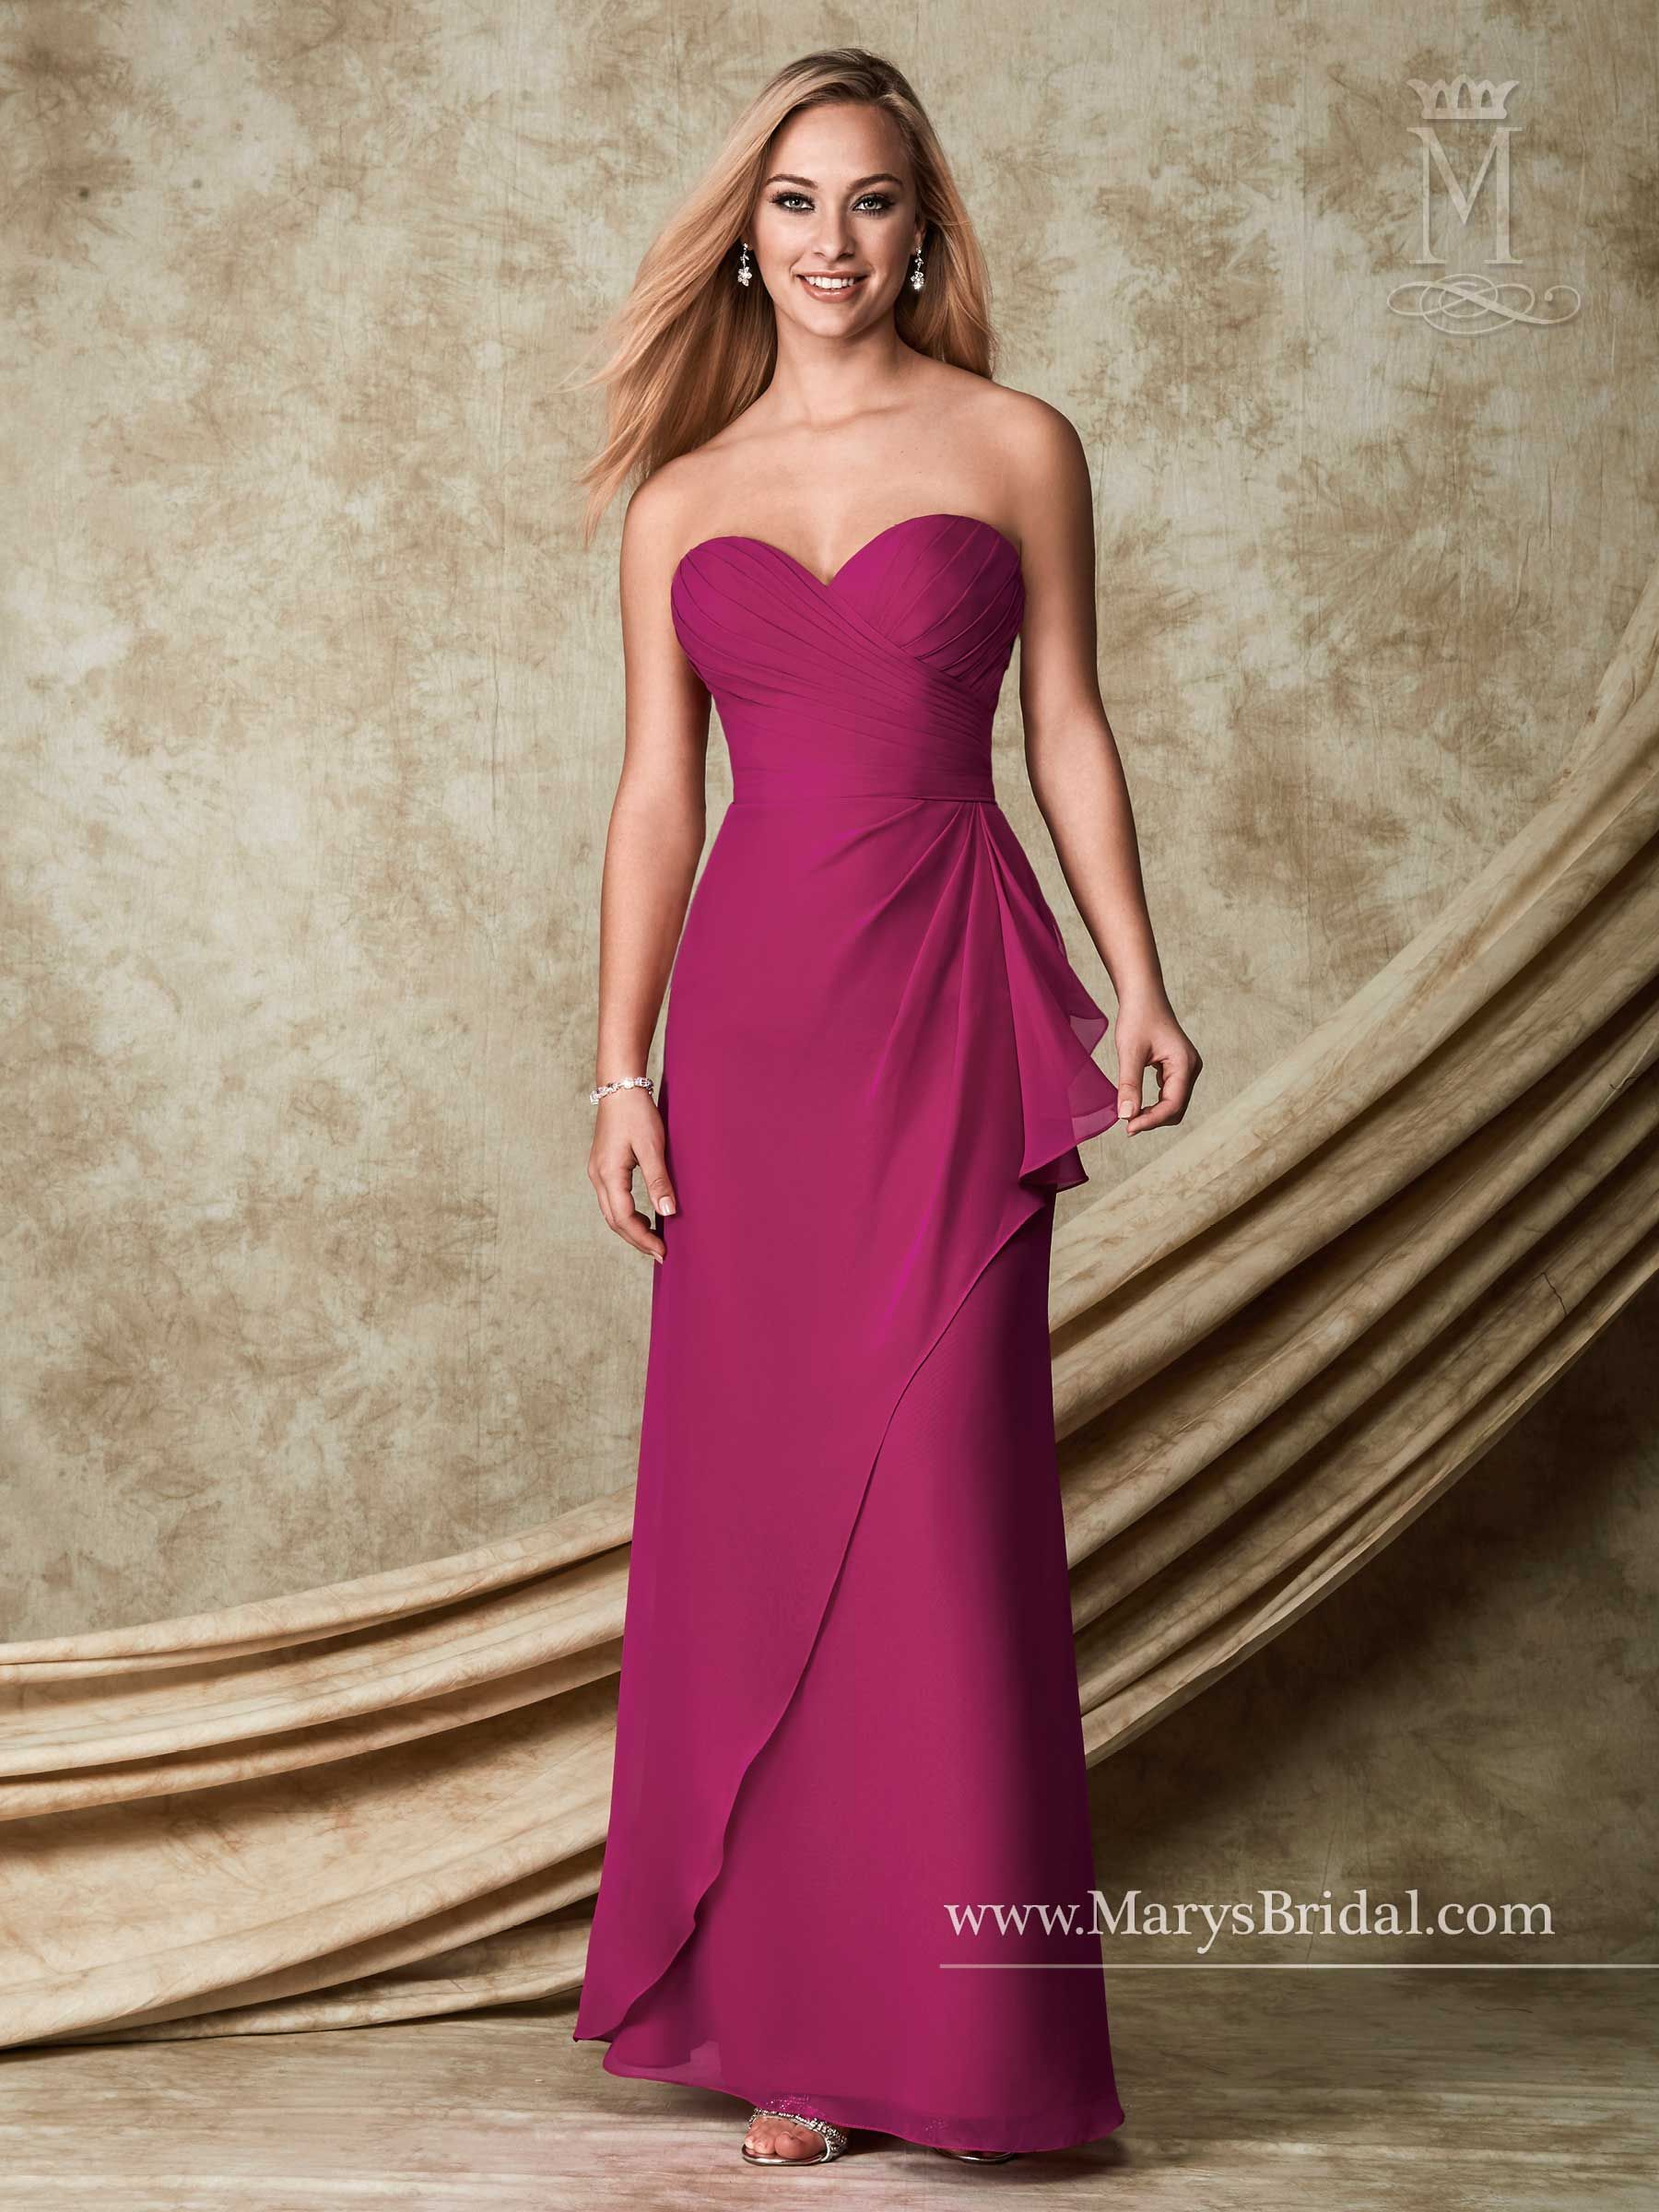 bridesmaids - modern maids - style: m1502mary's bridal gowns